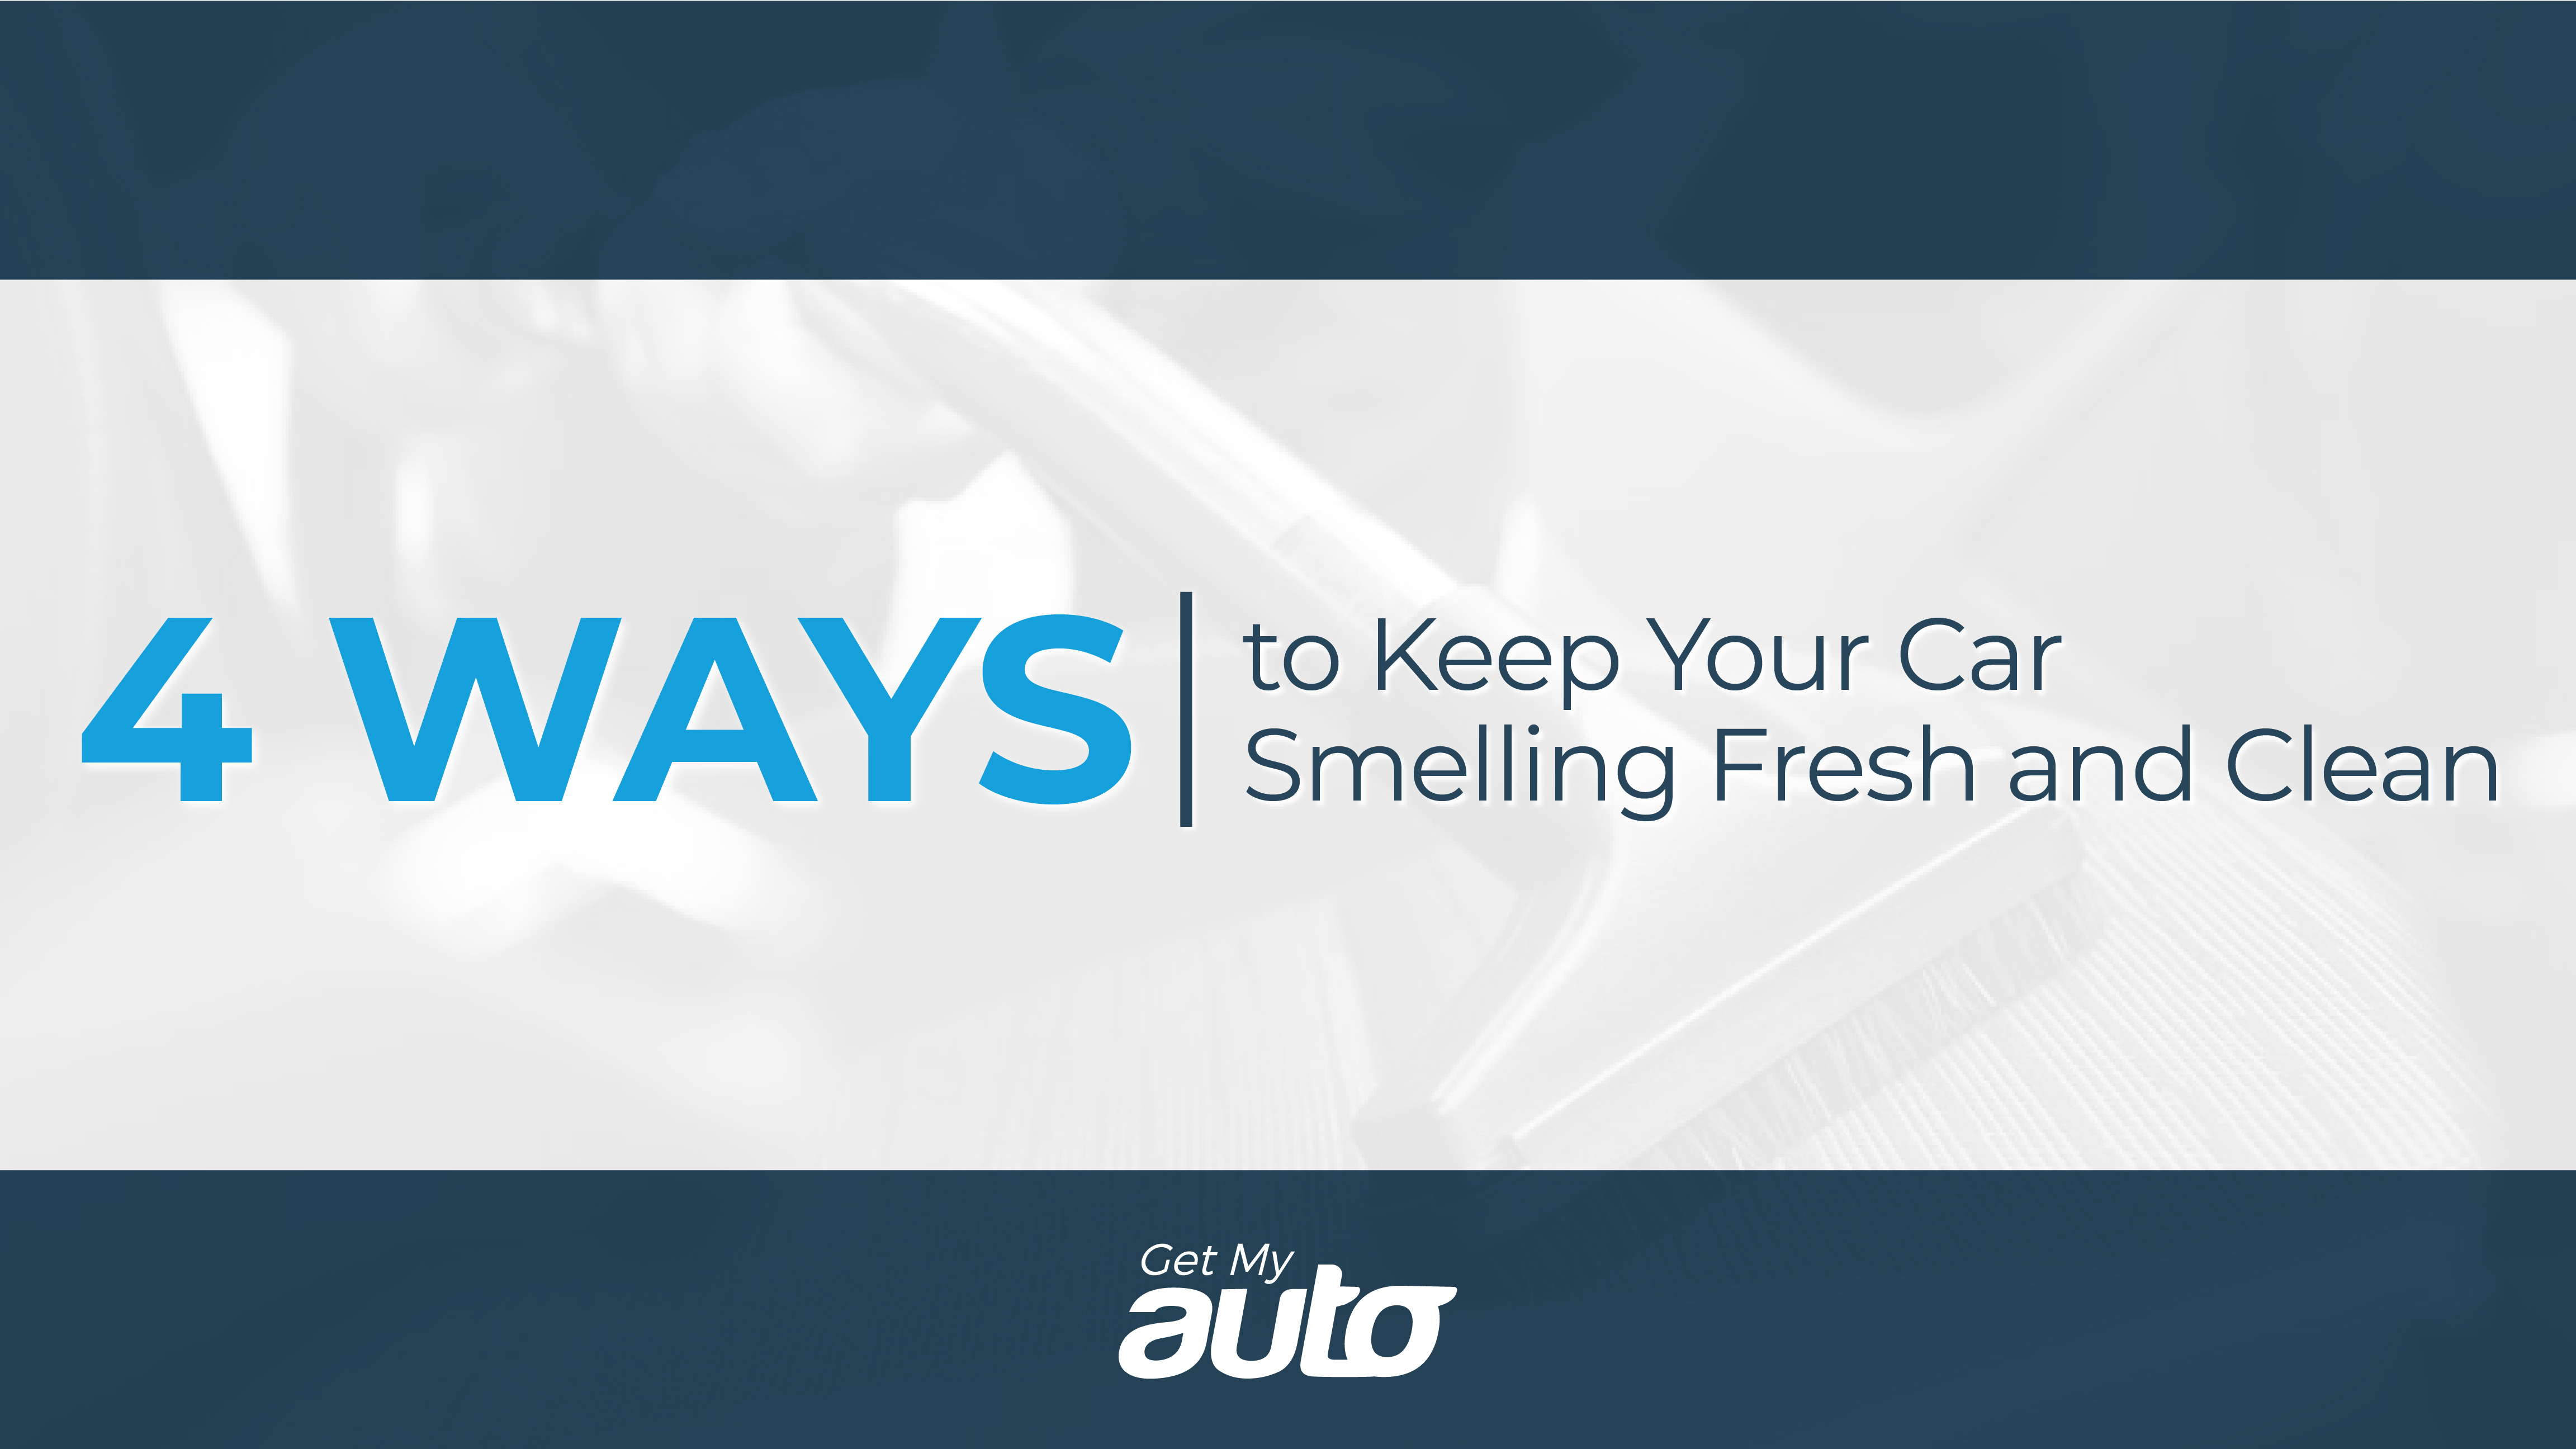 4 Ways to Keep Your Car Smelling Fresh and Clean GetMyAtuto